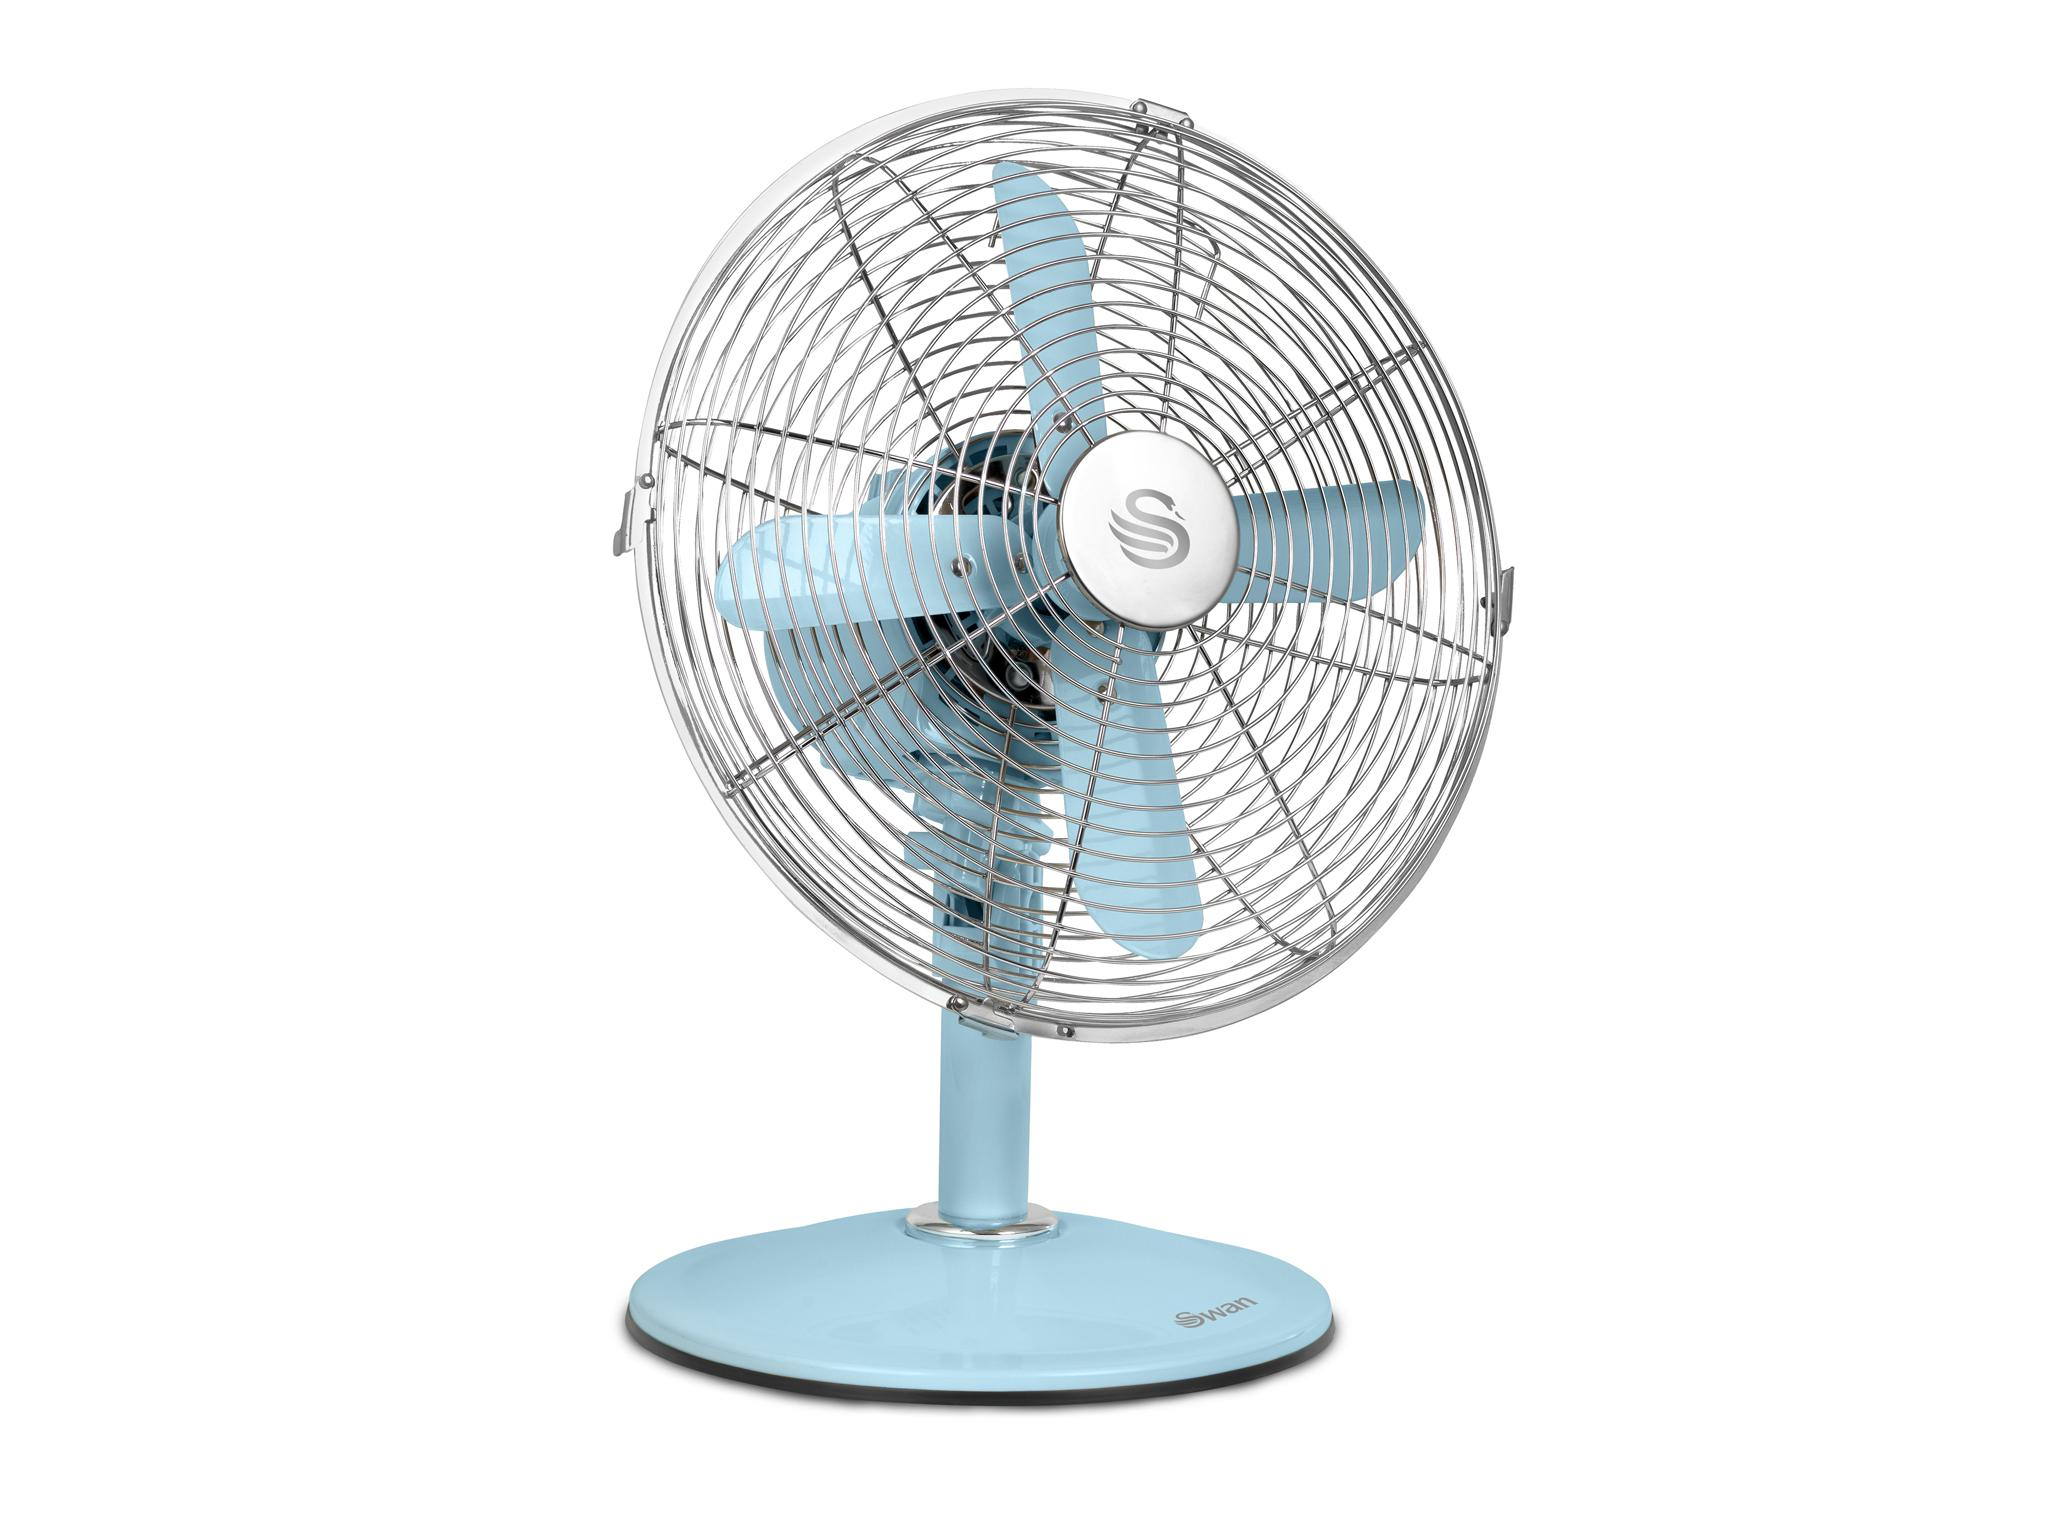 10 Best Cooling Fans The Independent How To Control An Electric Fan With A Factory Thermoswitch Apps This Is Part Of Swans Range Stylish Retro Look Home Accessories Which Come In Funky Colours There Are Two Available Pedestal One